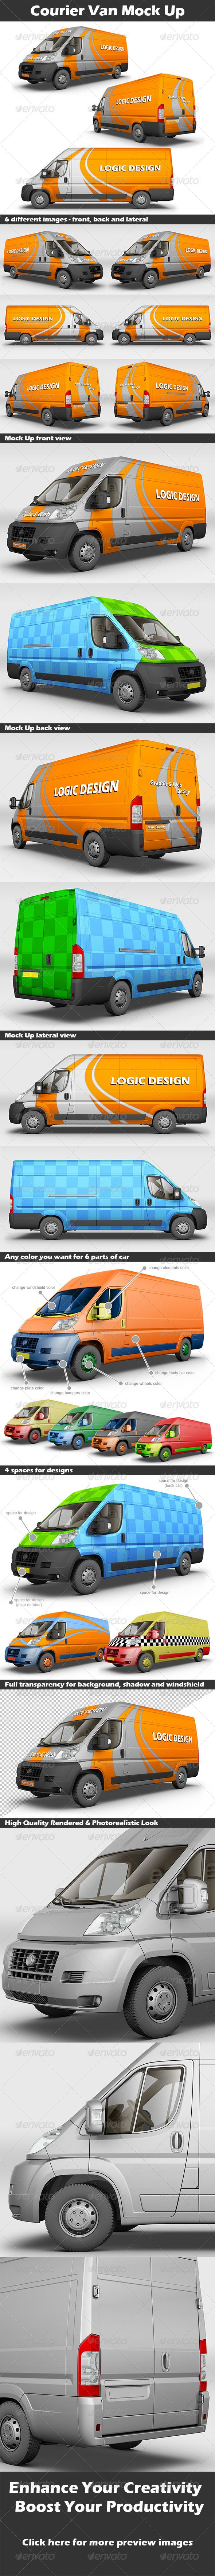 Courier Van Mock Up — Photoshop PSD #cargo #carrying van • Available here → https://graphicriver.net/item/courier-van-mock-up/5712741?ref=pxcr